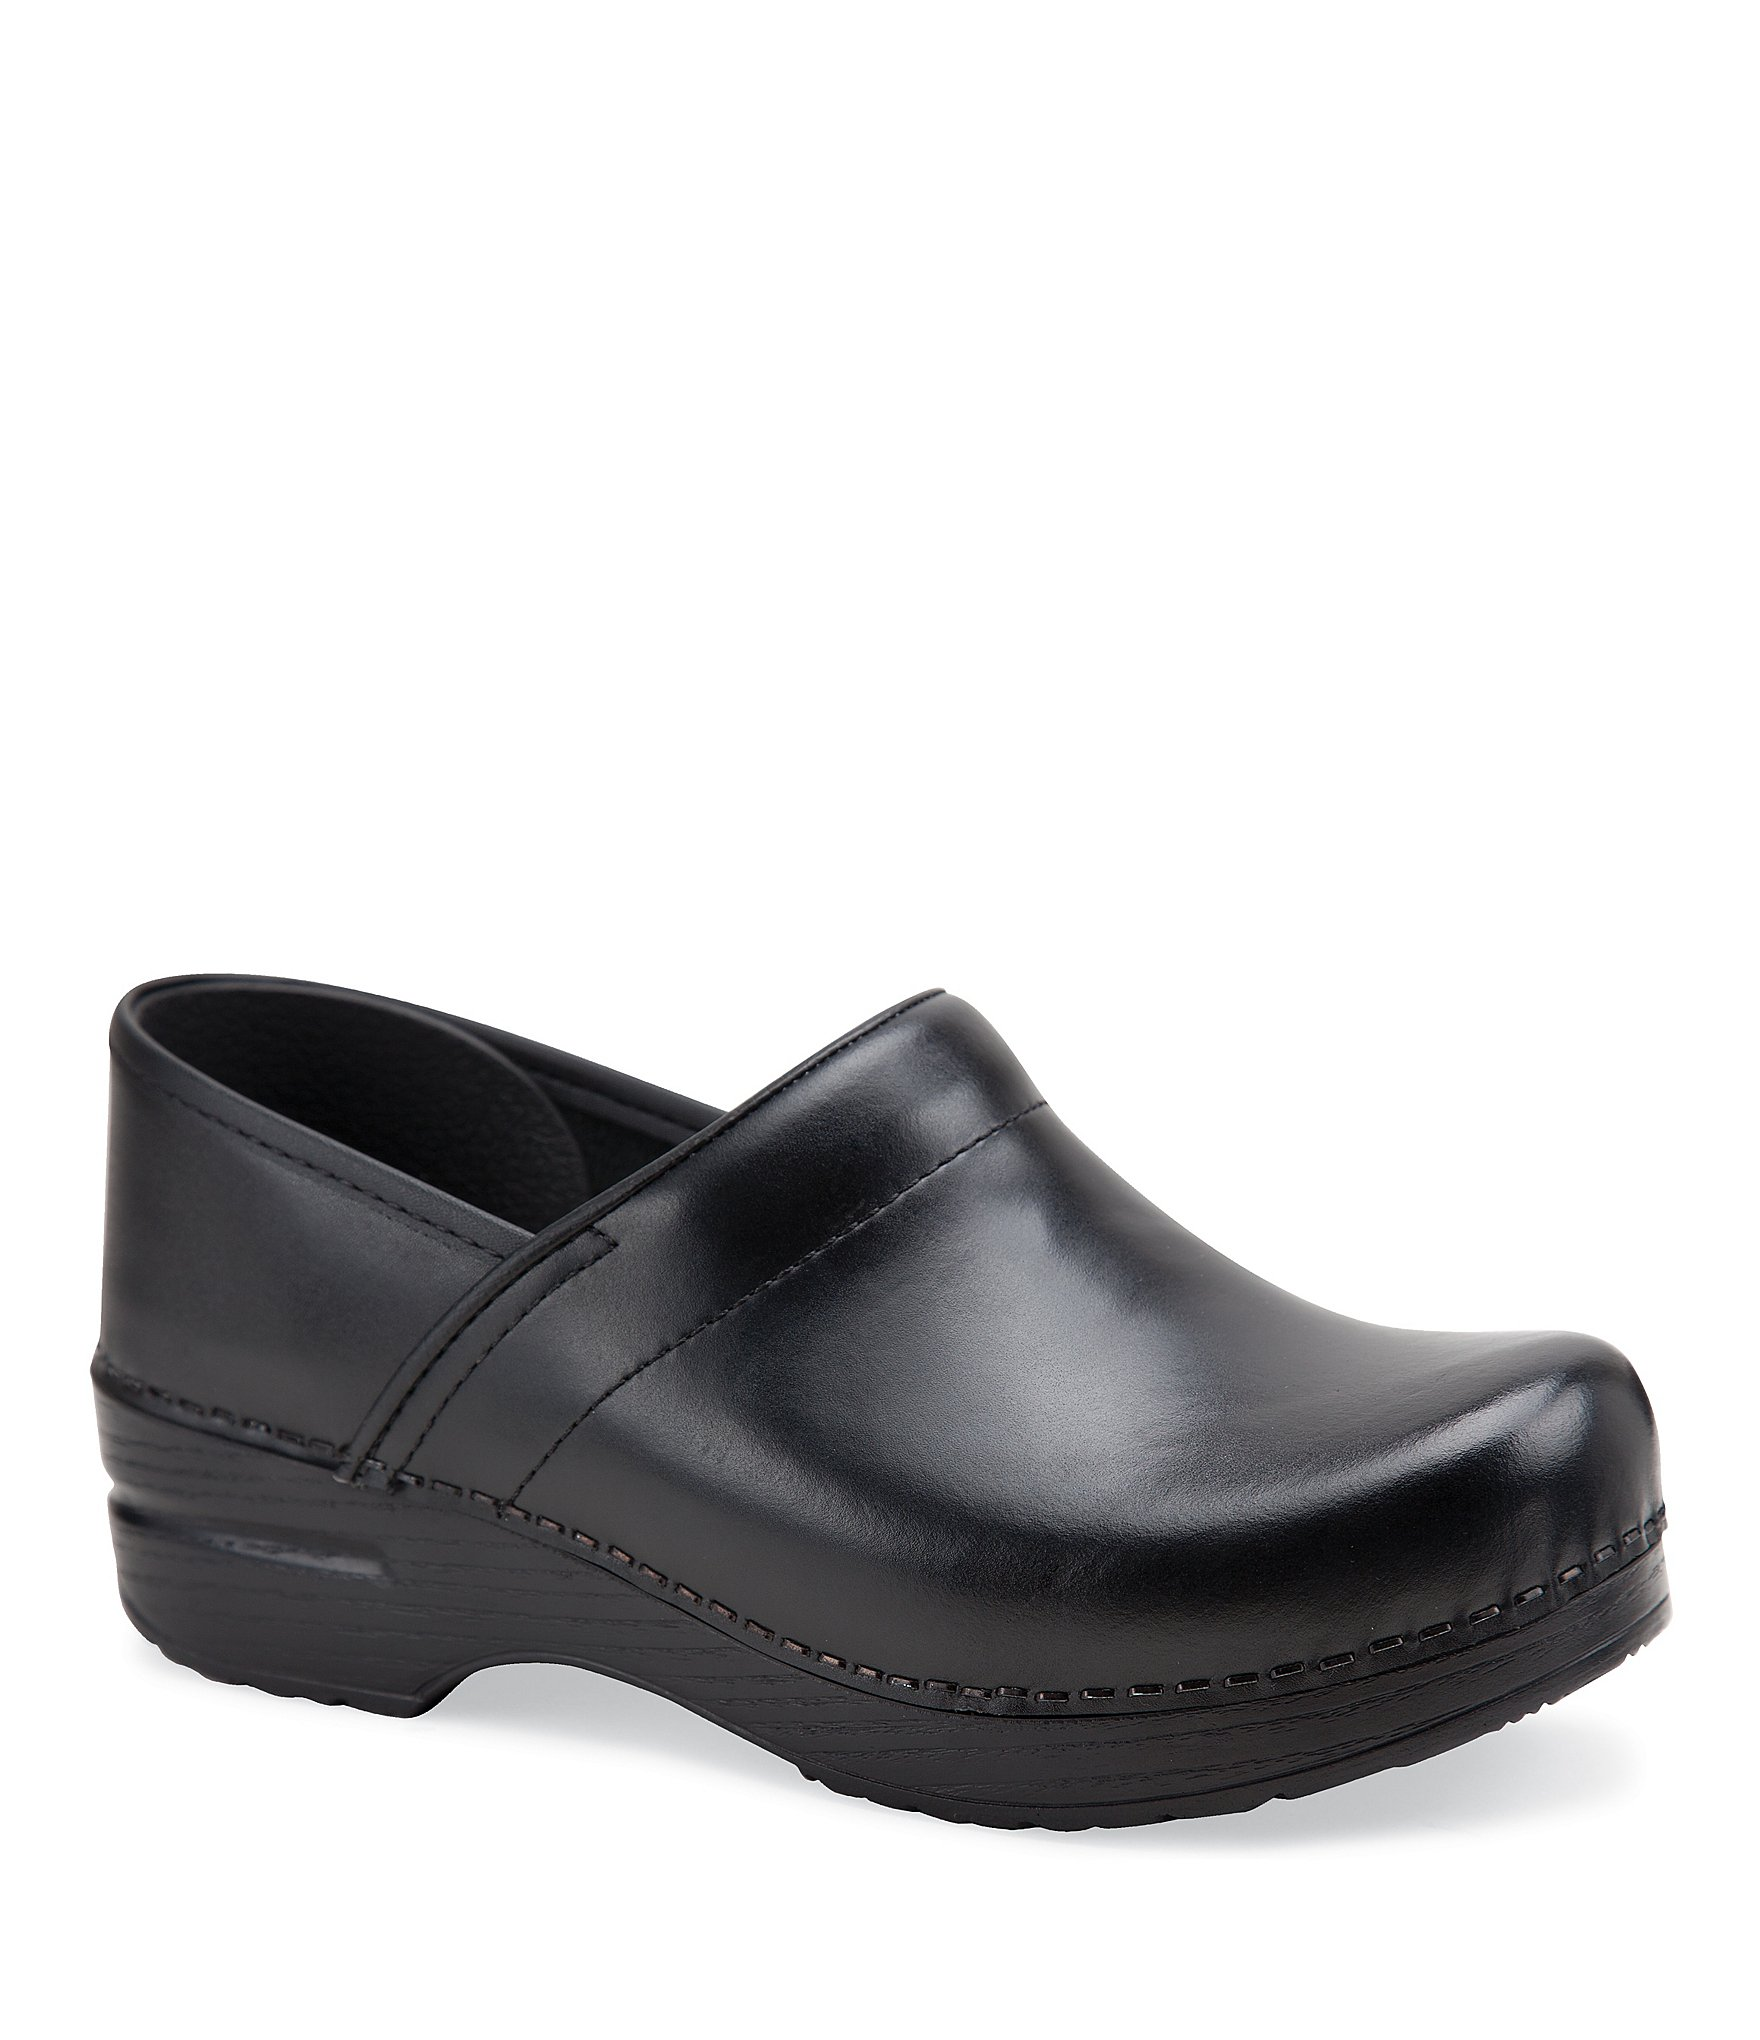 Dansko Clogs Clearance